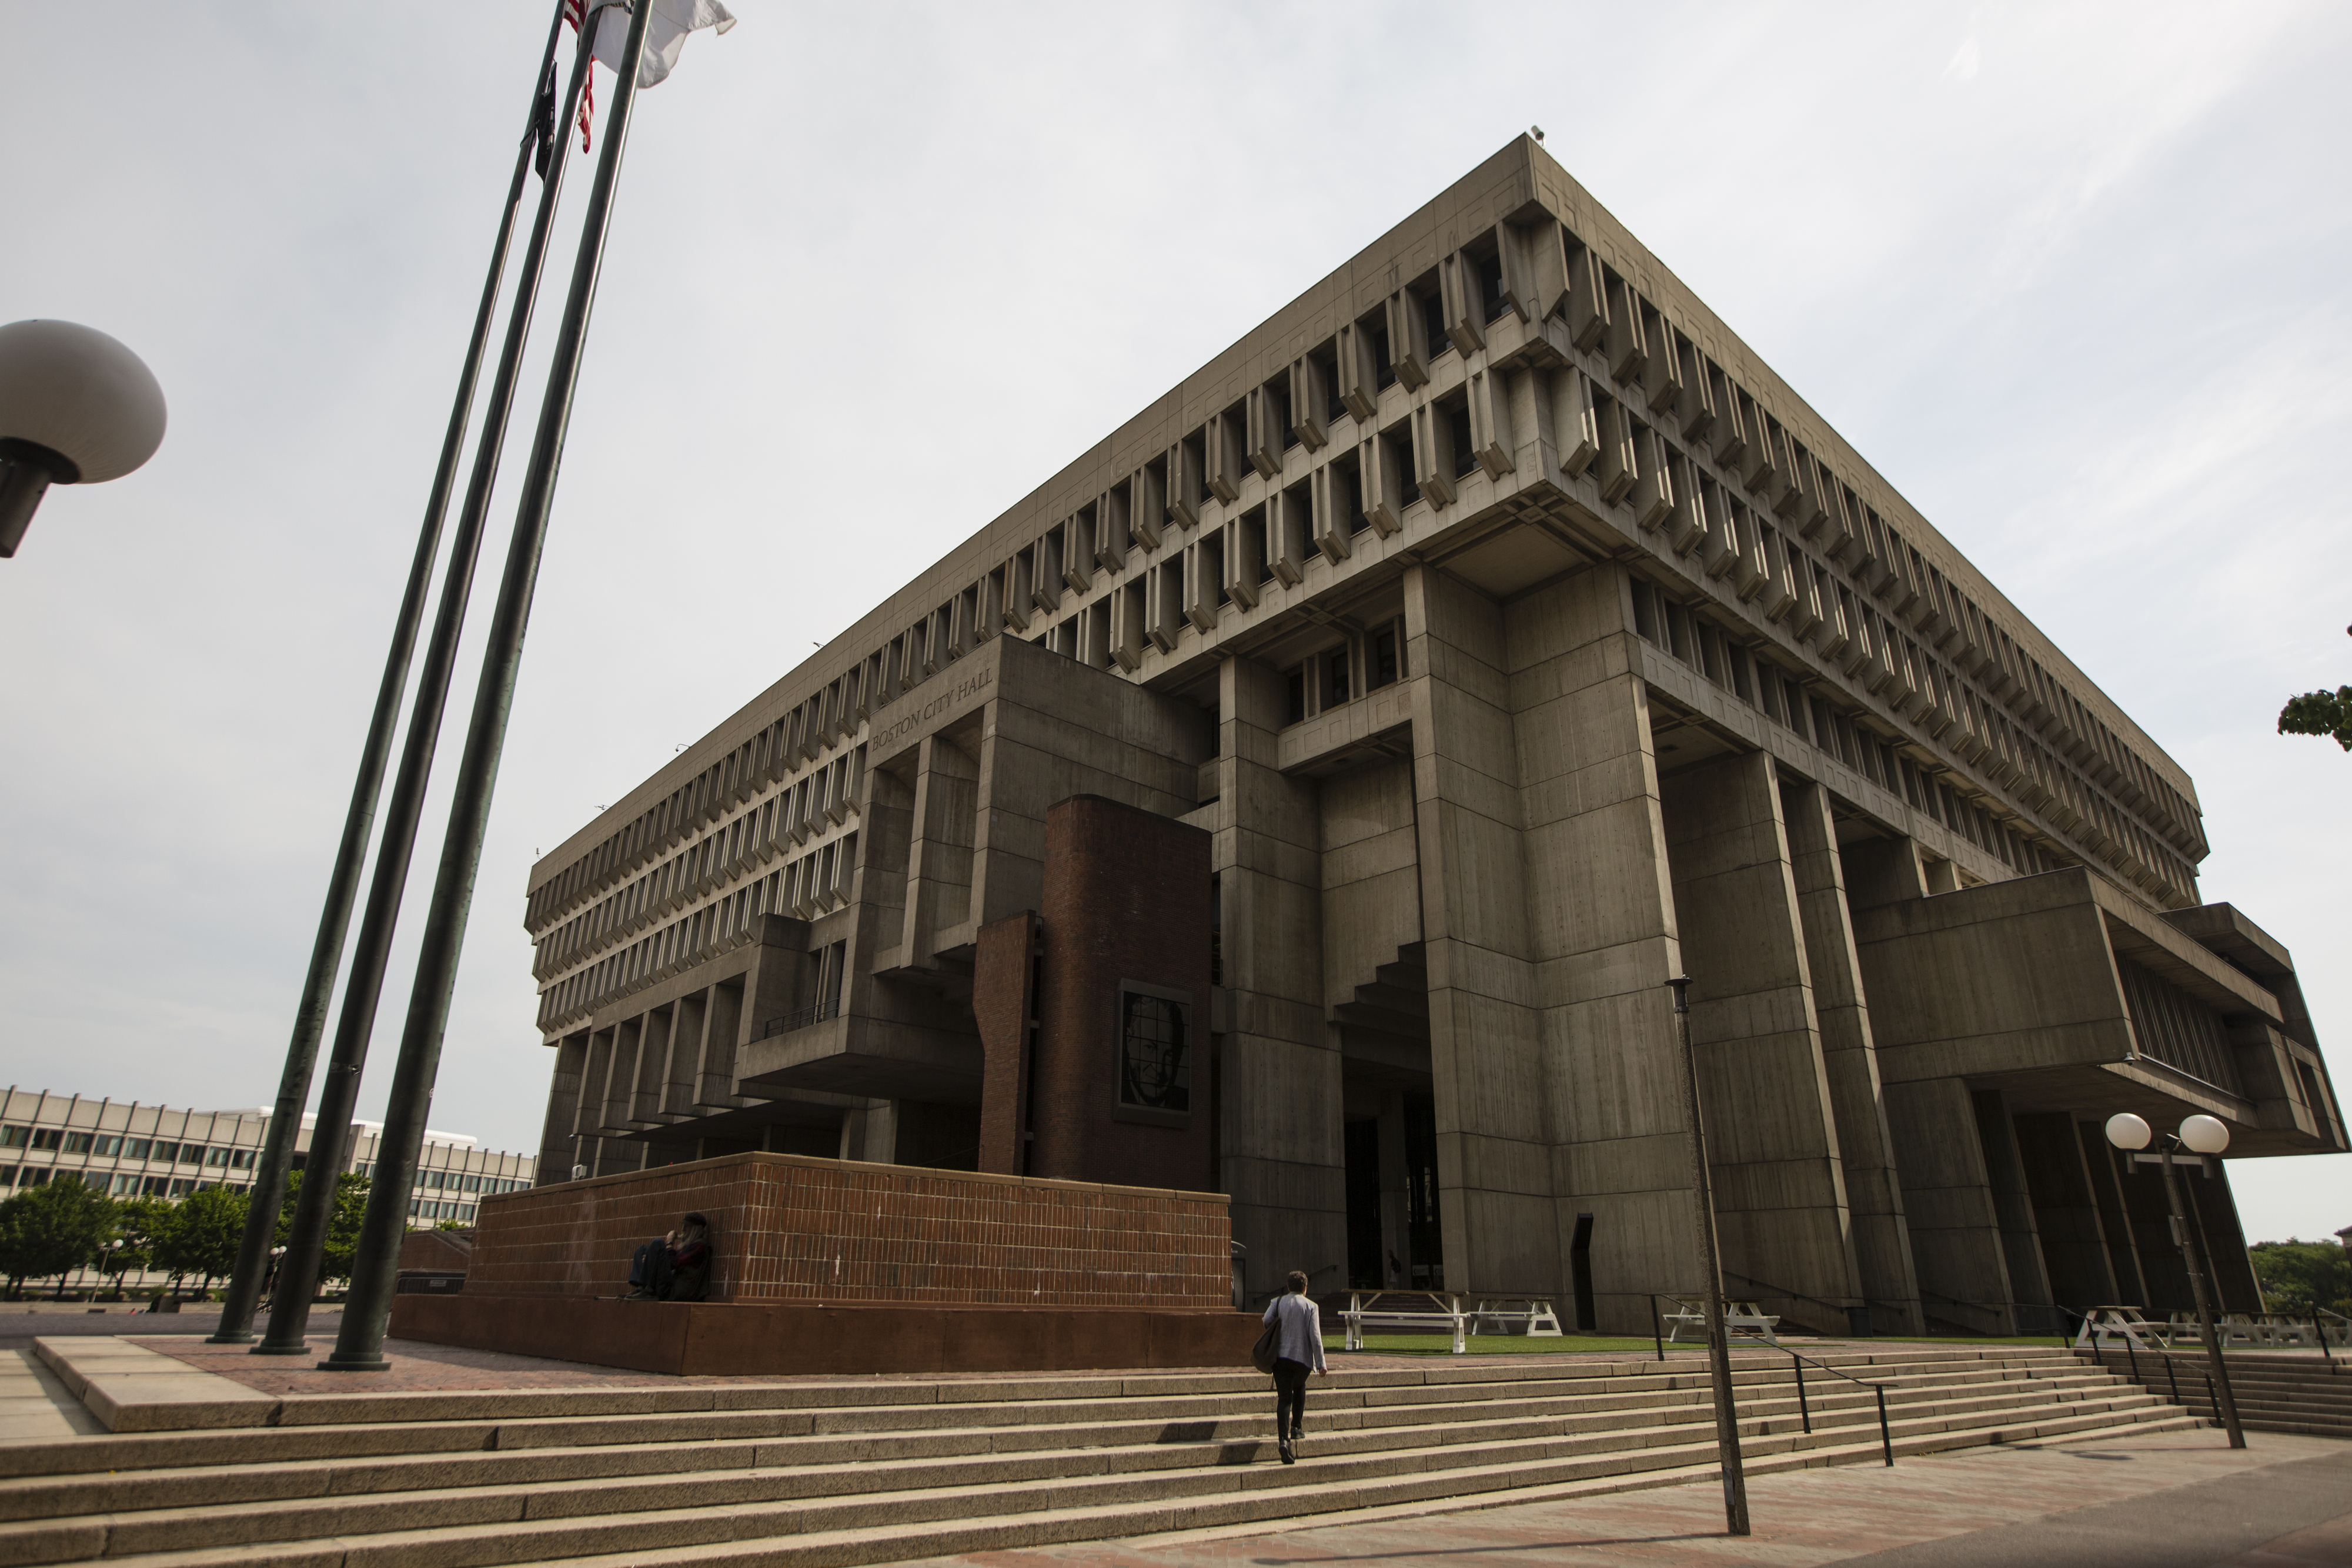 Sweeping '80s probe of Boston corruption was hardly 'low-level'